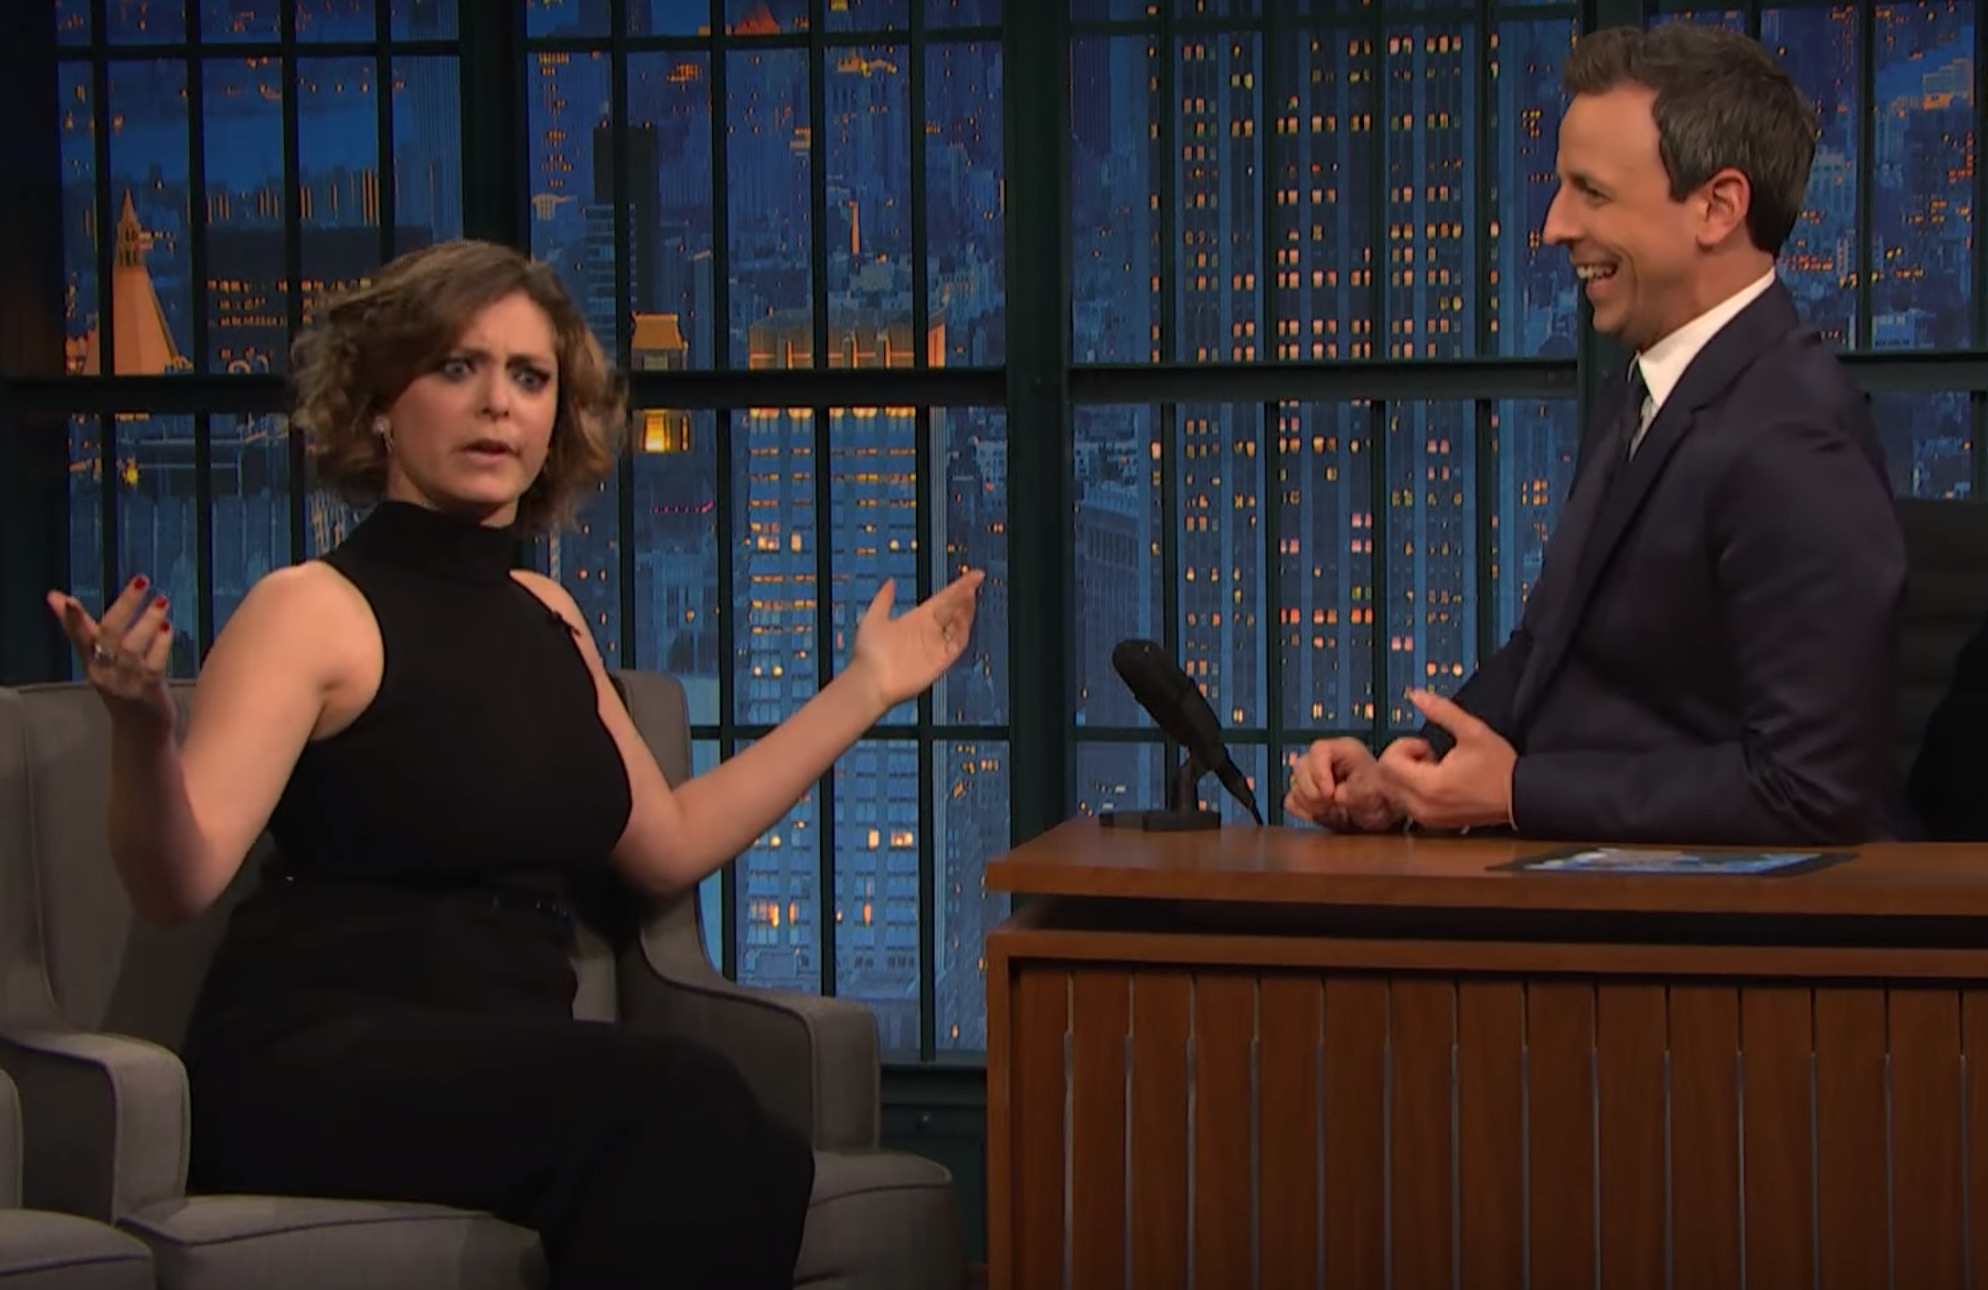 Rachel Bloom was Seth Meyers' intern and has some stories to share